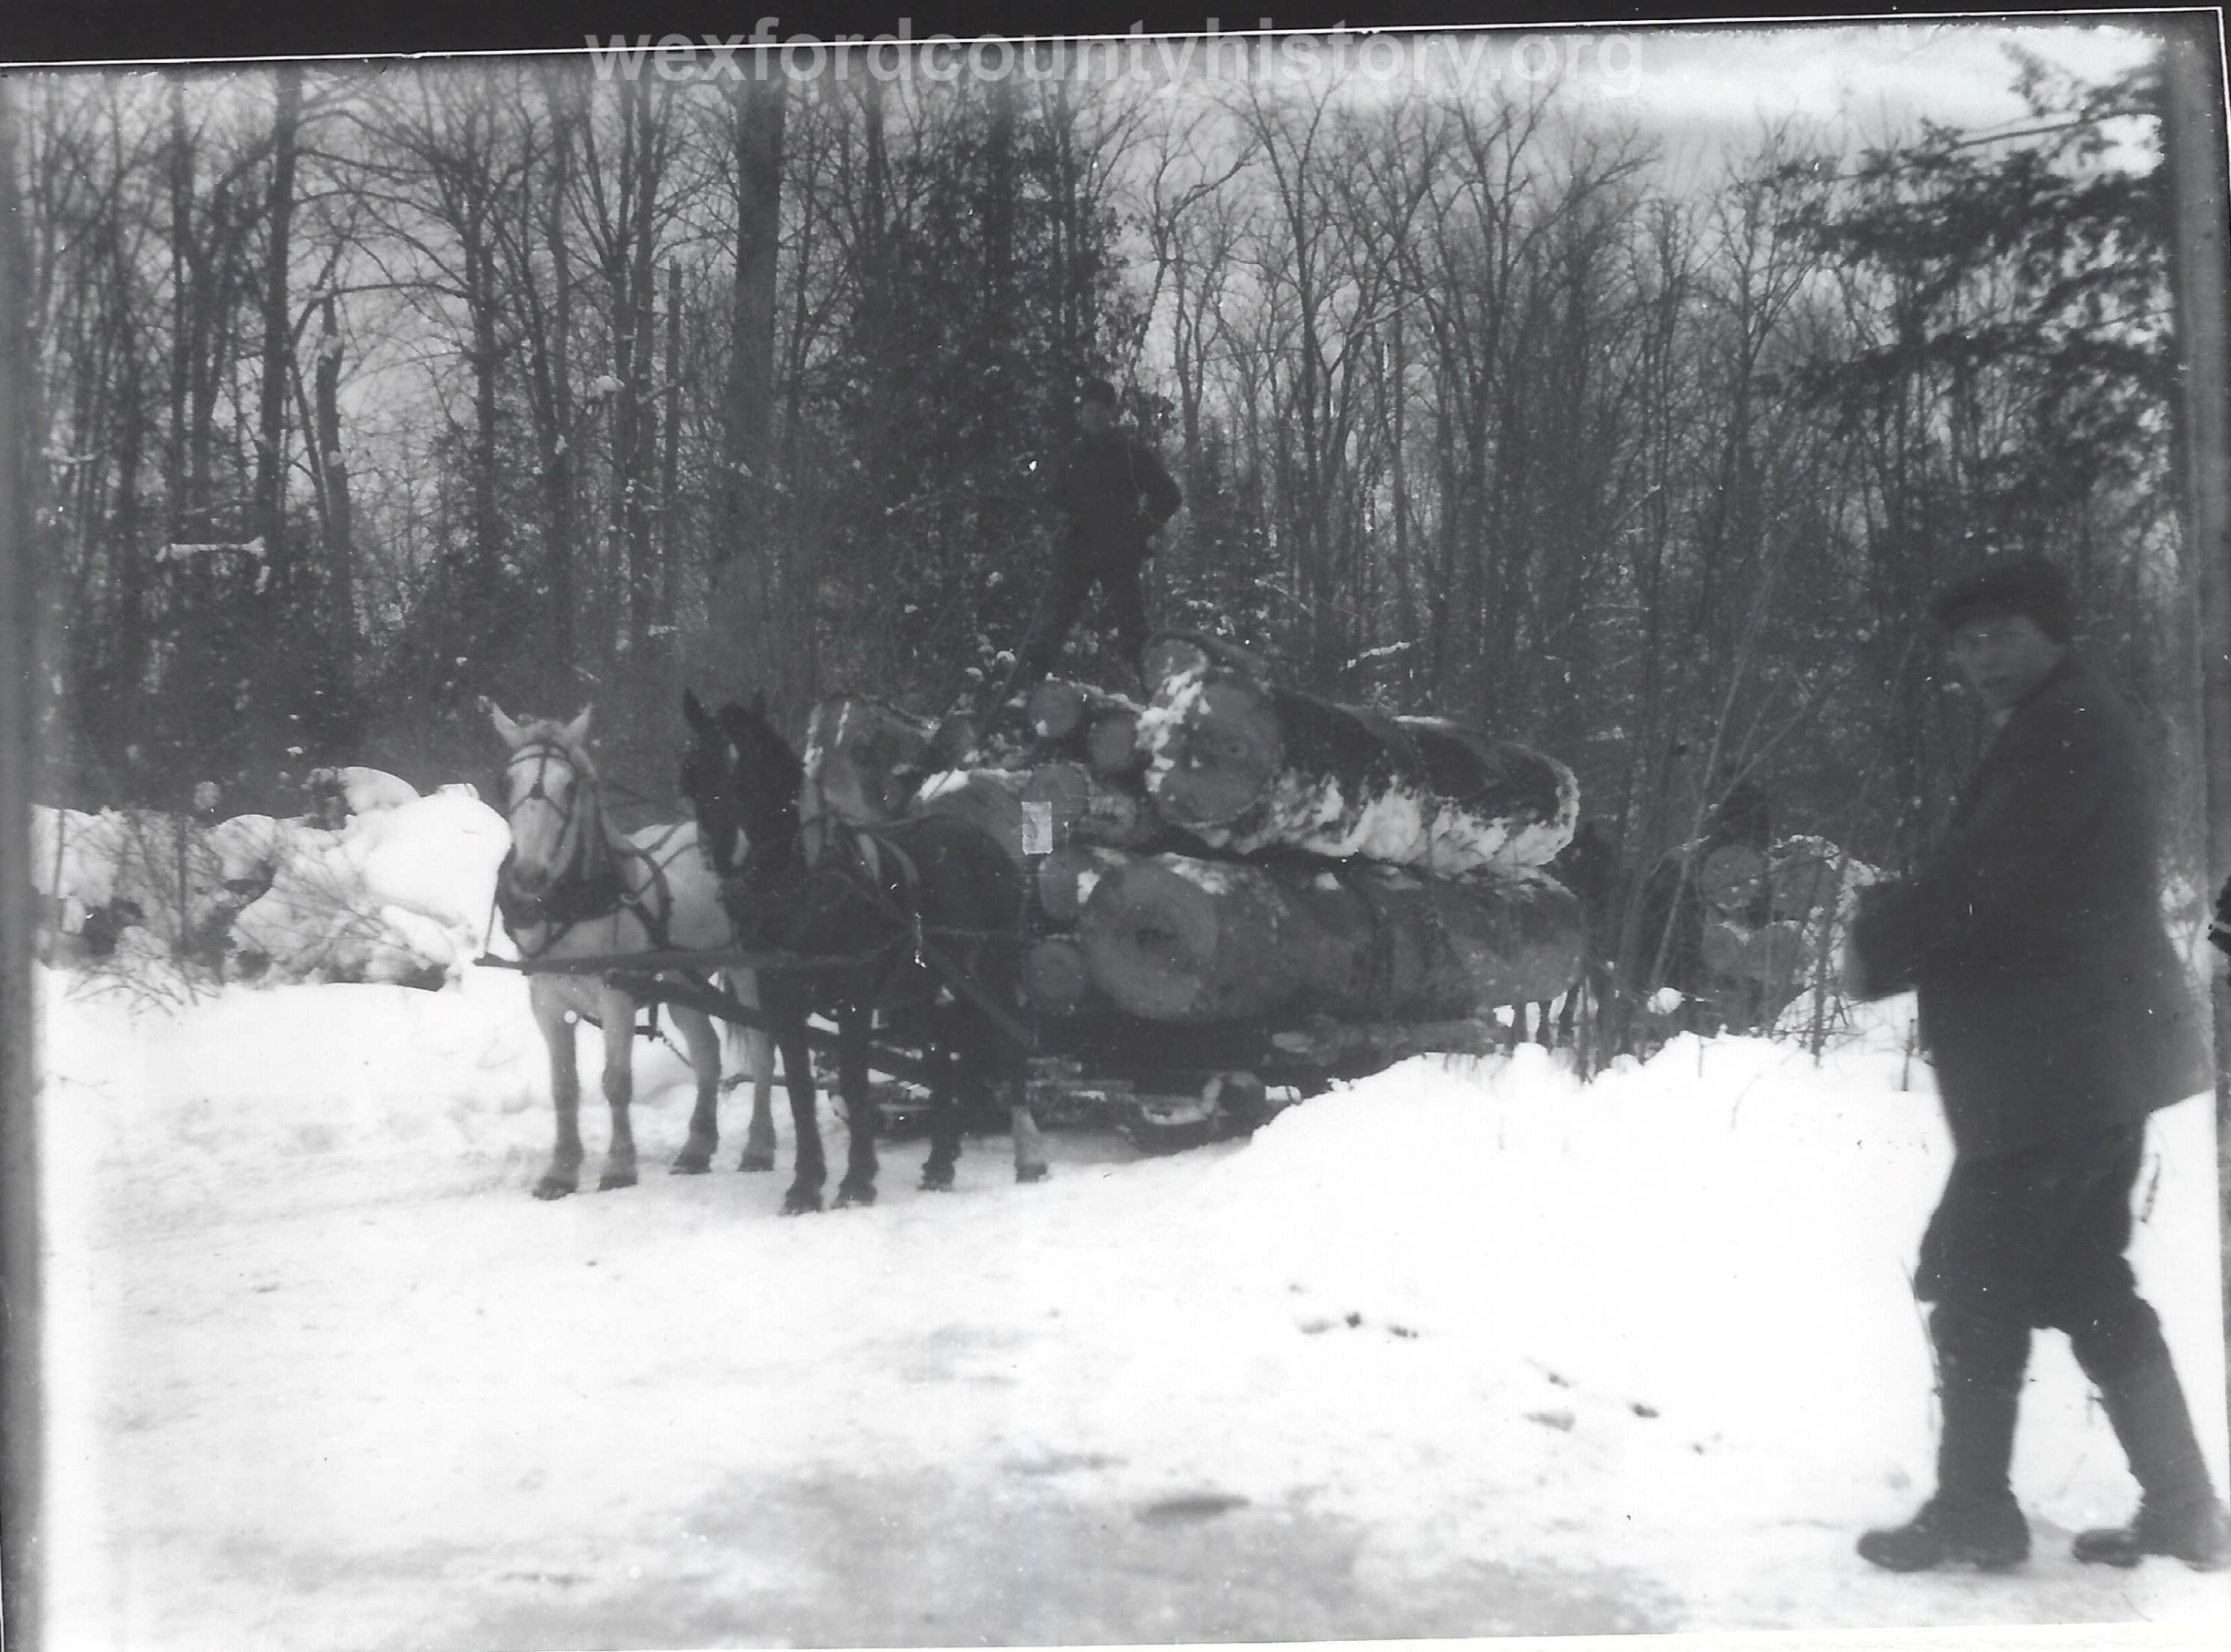 Cadillac-Lumber-Horse-Team-Pulling-Load-Of-Logs-On-Sled-4